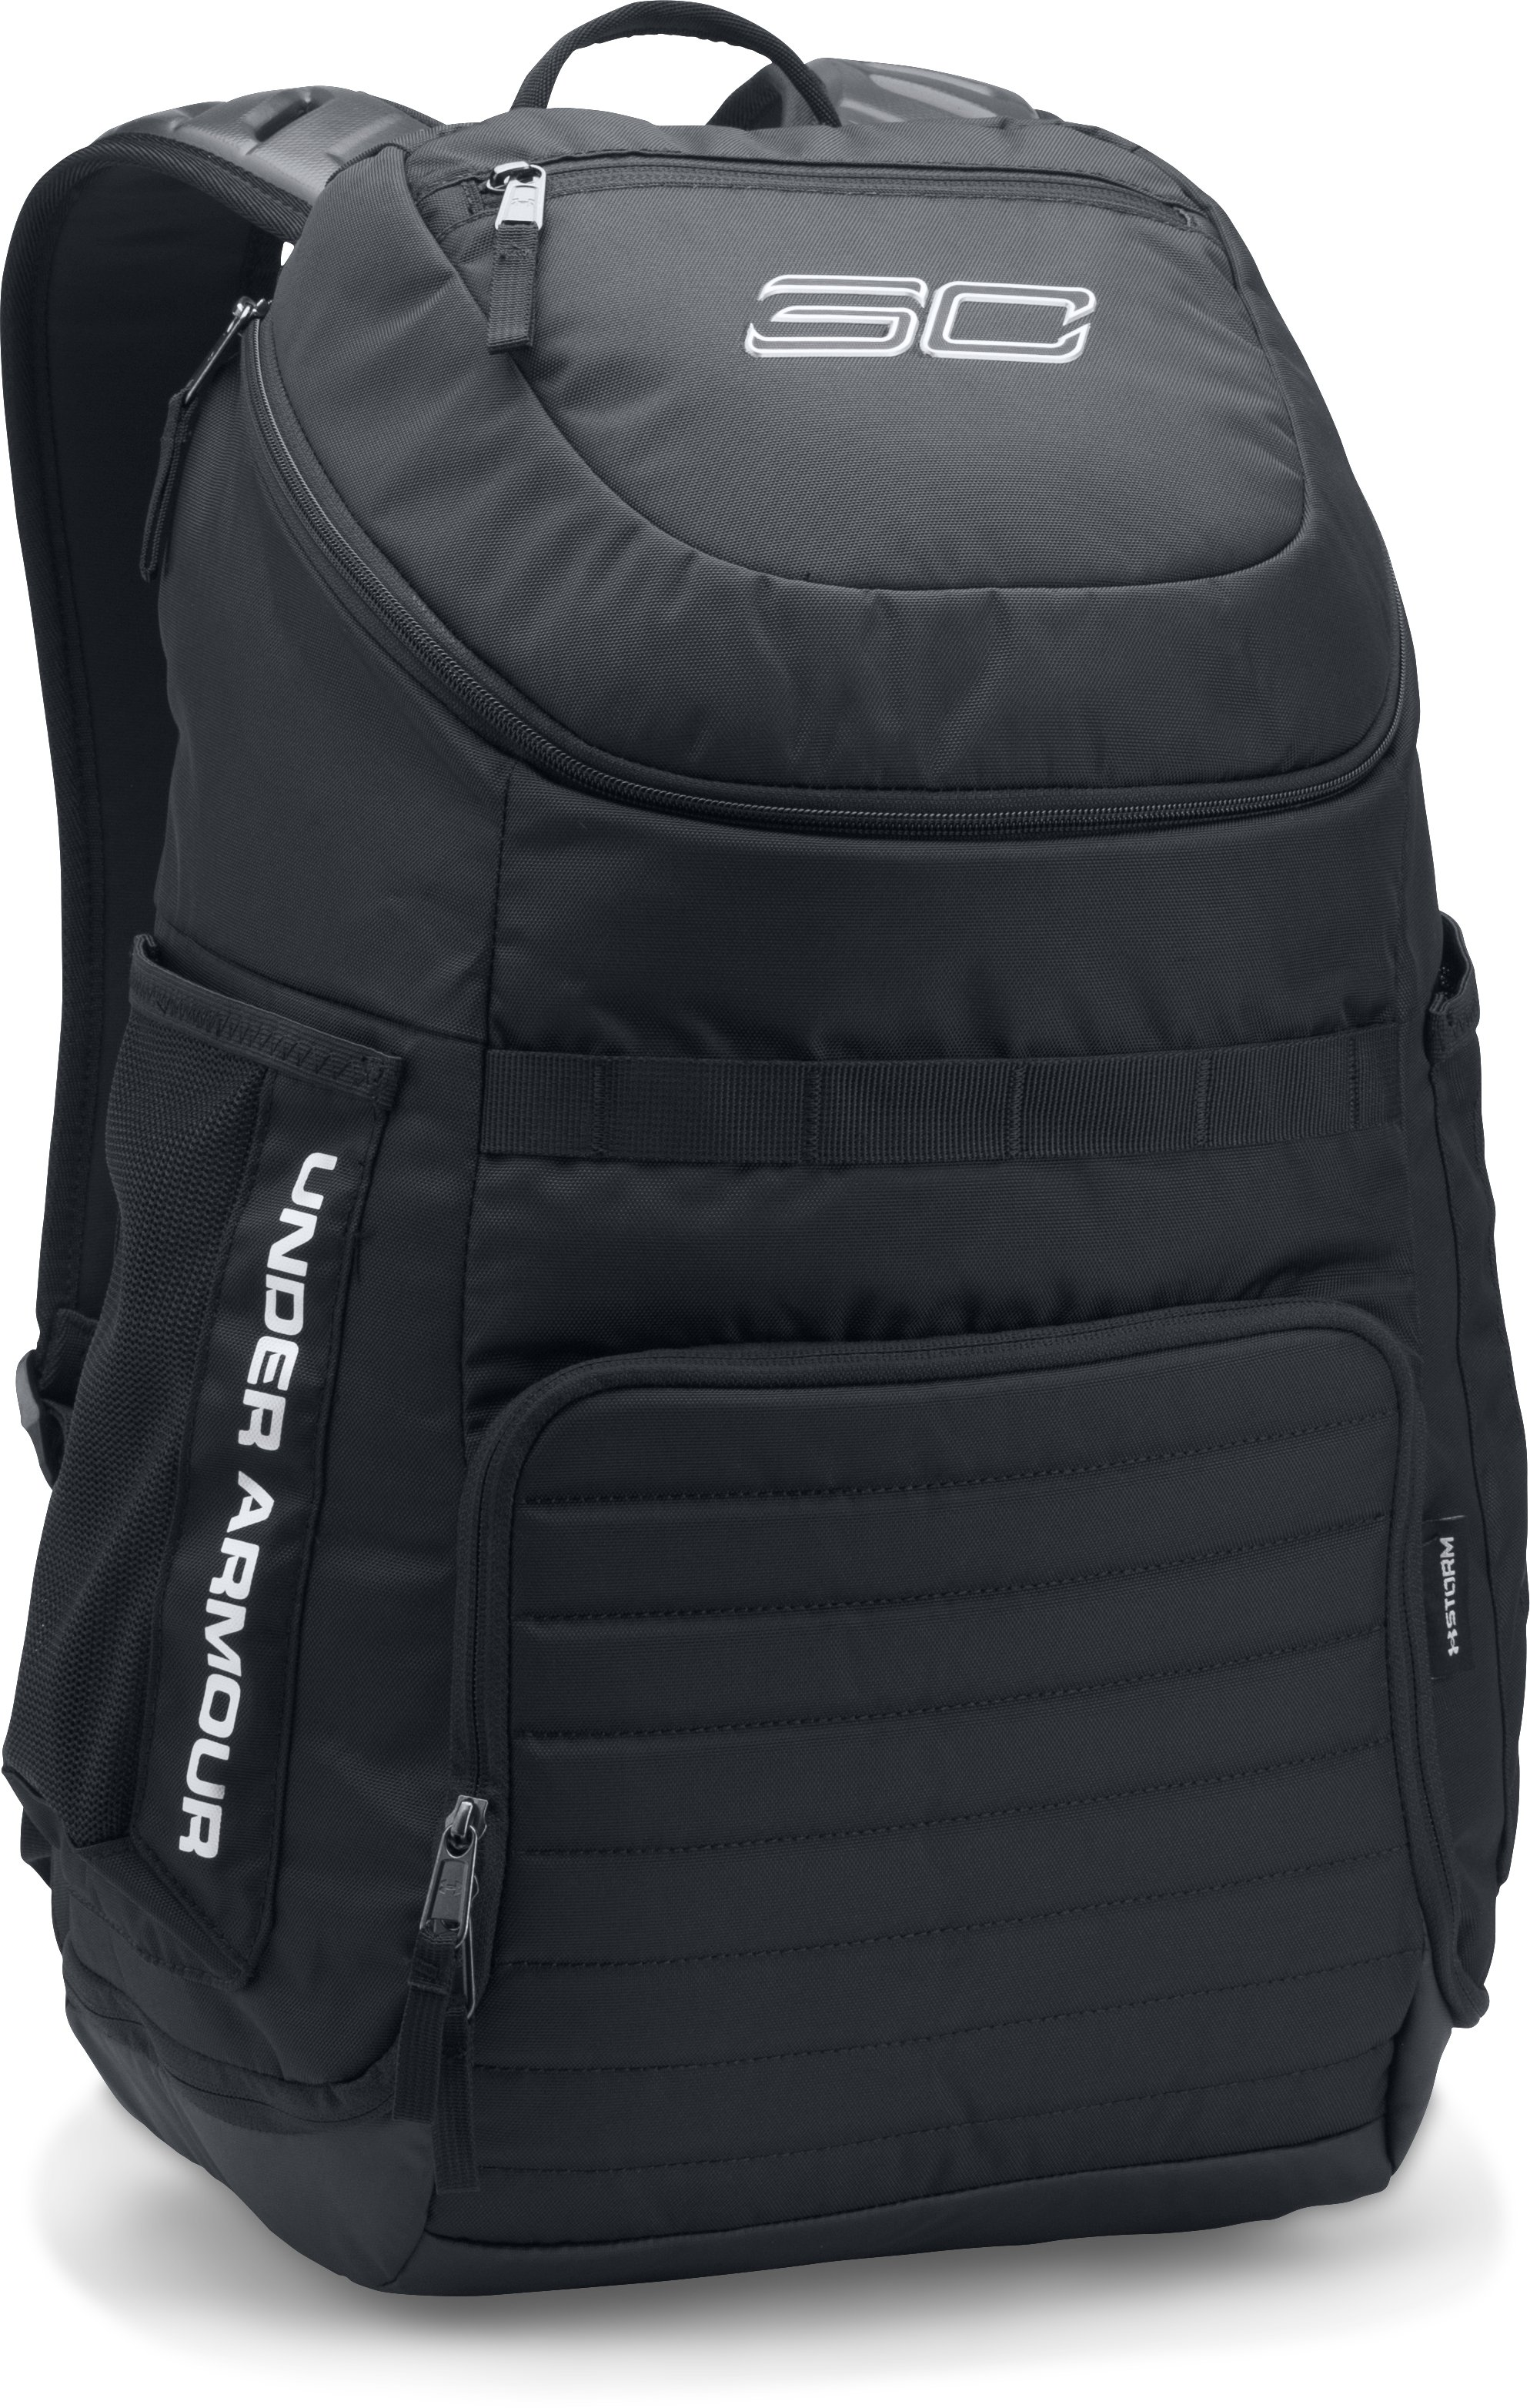 SC30 Undeniable Backpack, Black , zoomed image